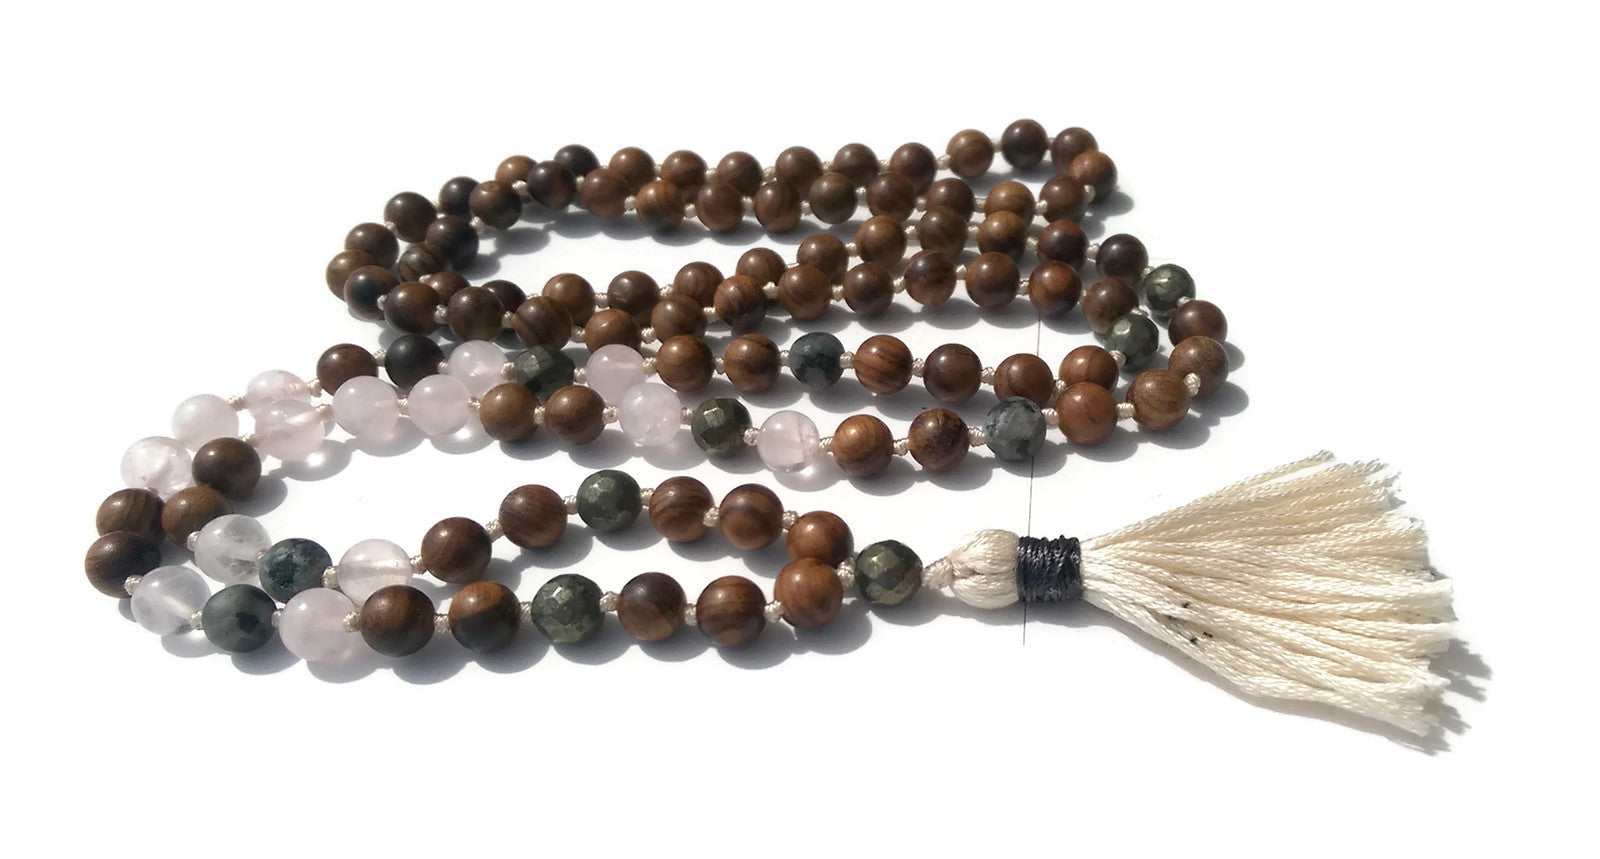 Pure Collection 8mm Pear Wood Rose Quartz Labradorite Pyrite Traditional Hand Knotted 108 Bead Meditation Mala Necklace Heart Chakra Yoga